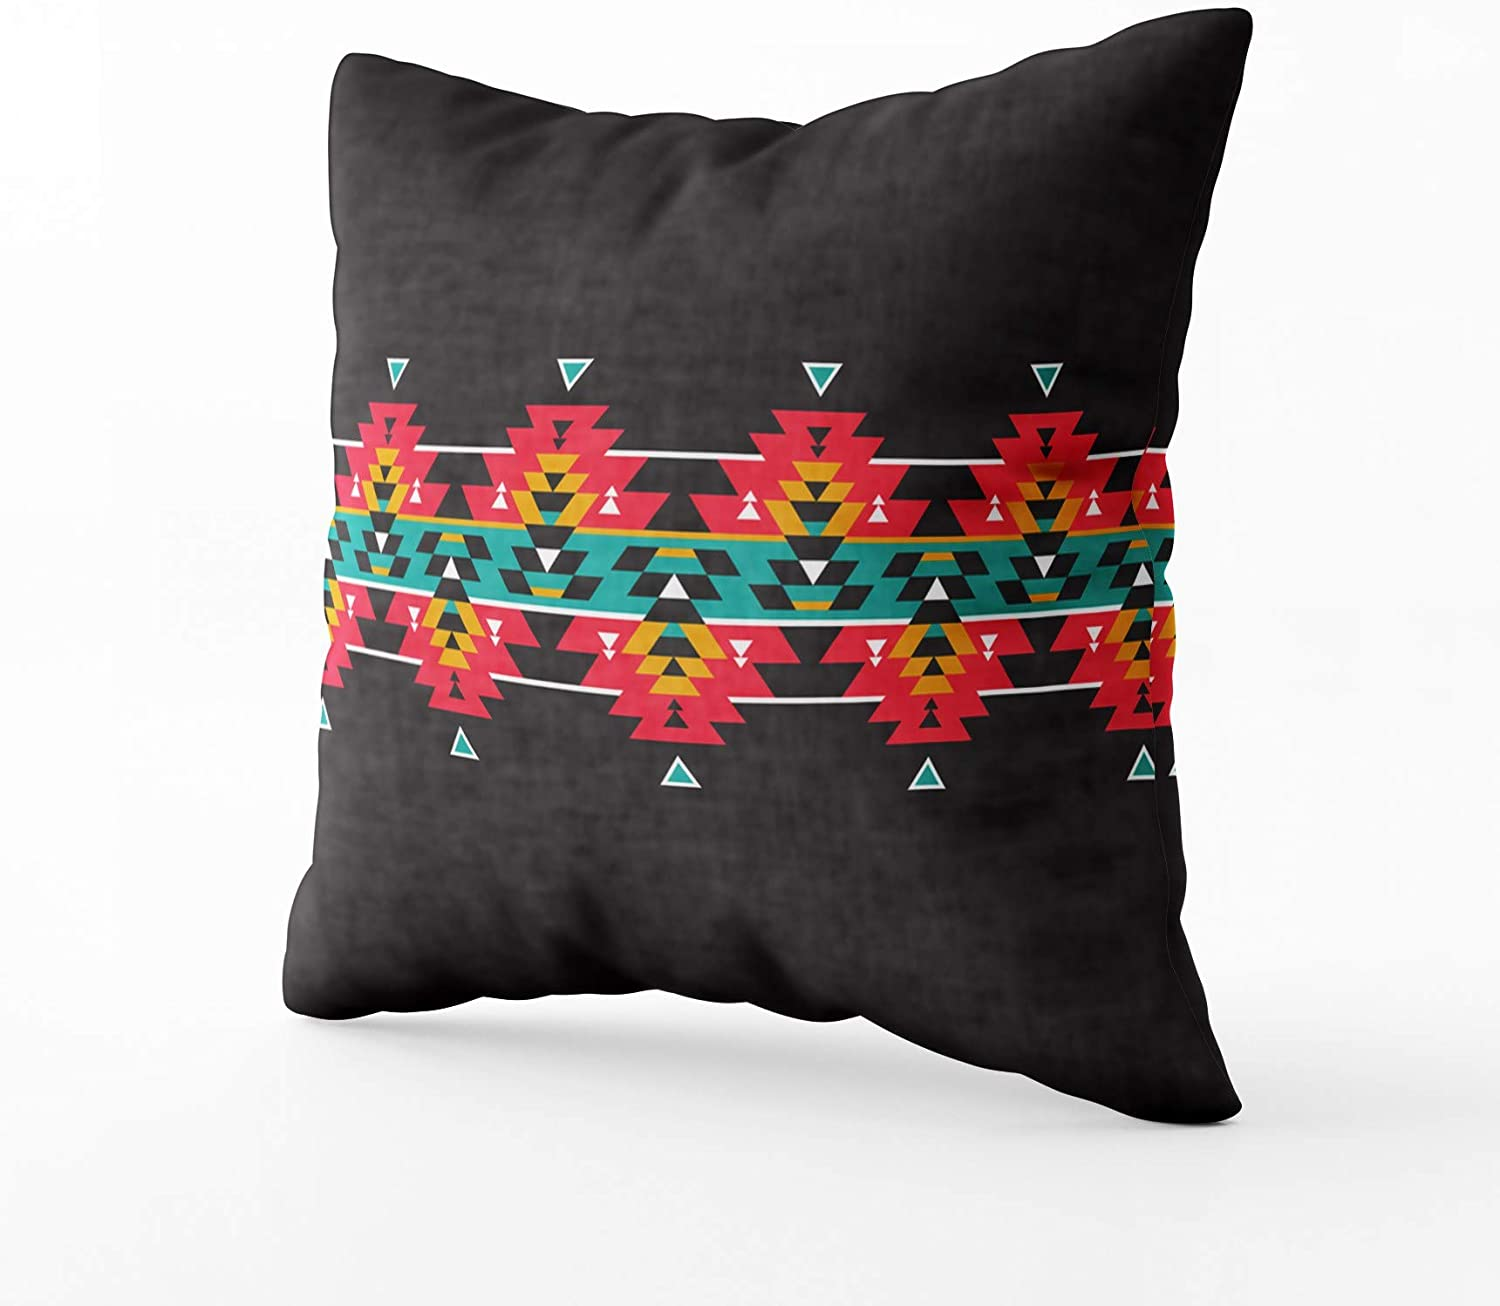 Home Decorative Throw Pillow Cover 16X16inch Invisible Zipper Cushion Cases Tribal Colorful Geometric Border Pattern Square Sofa Bed D/écor,Black Orange HerysTa Sofa Pillow Case